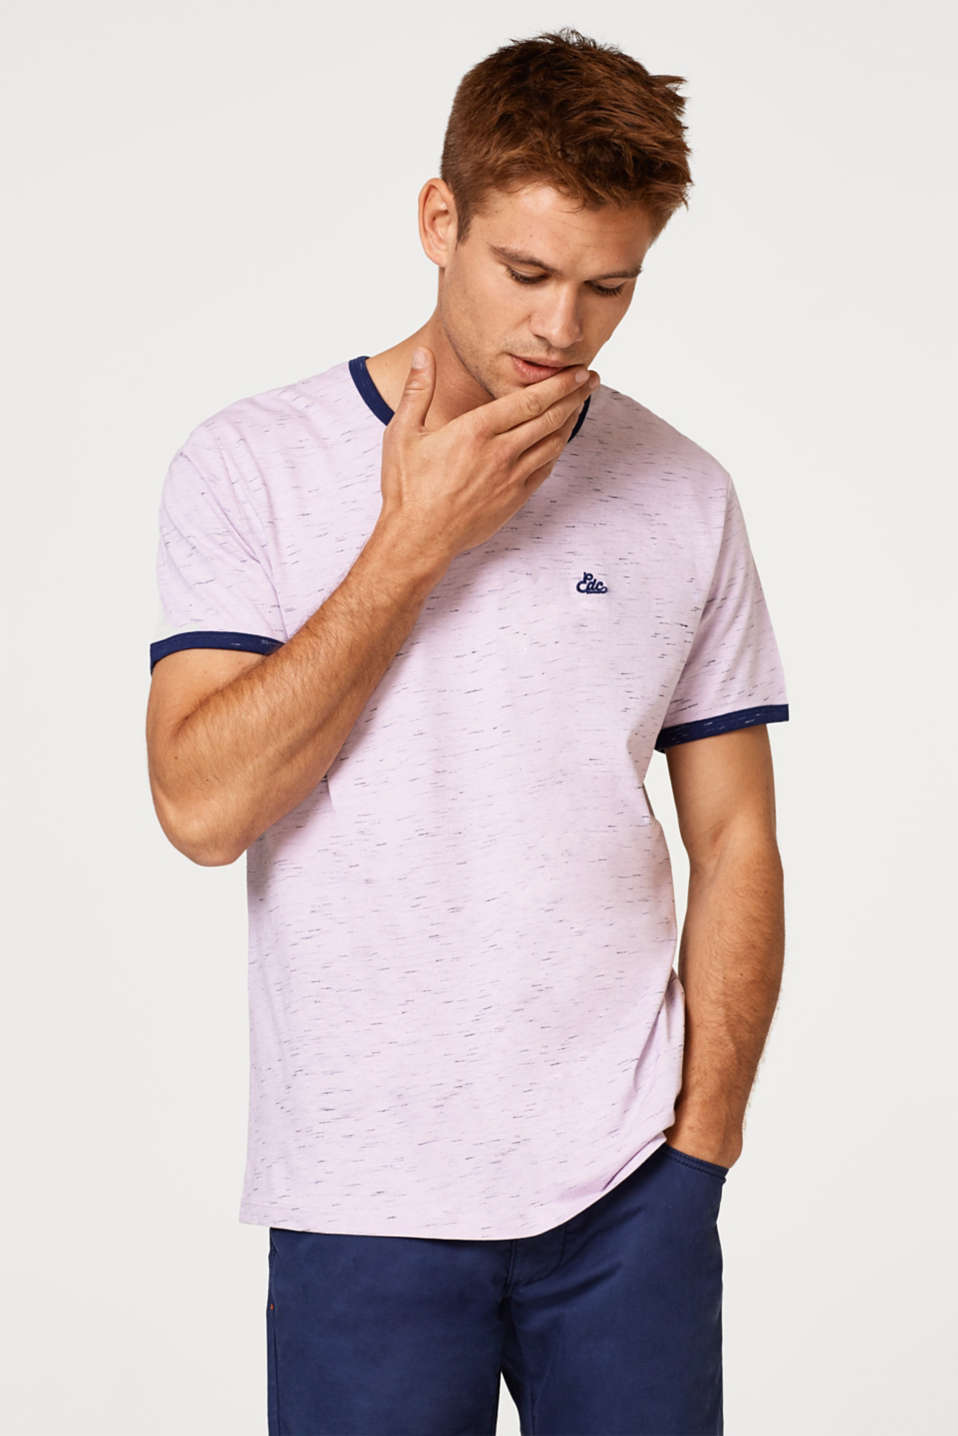 edc - Jersey T-shirt with colour contrast piping